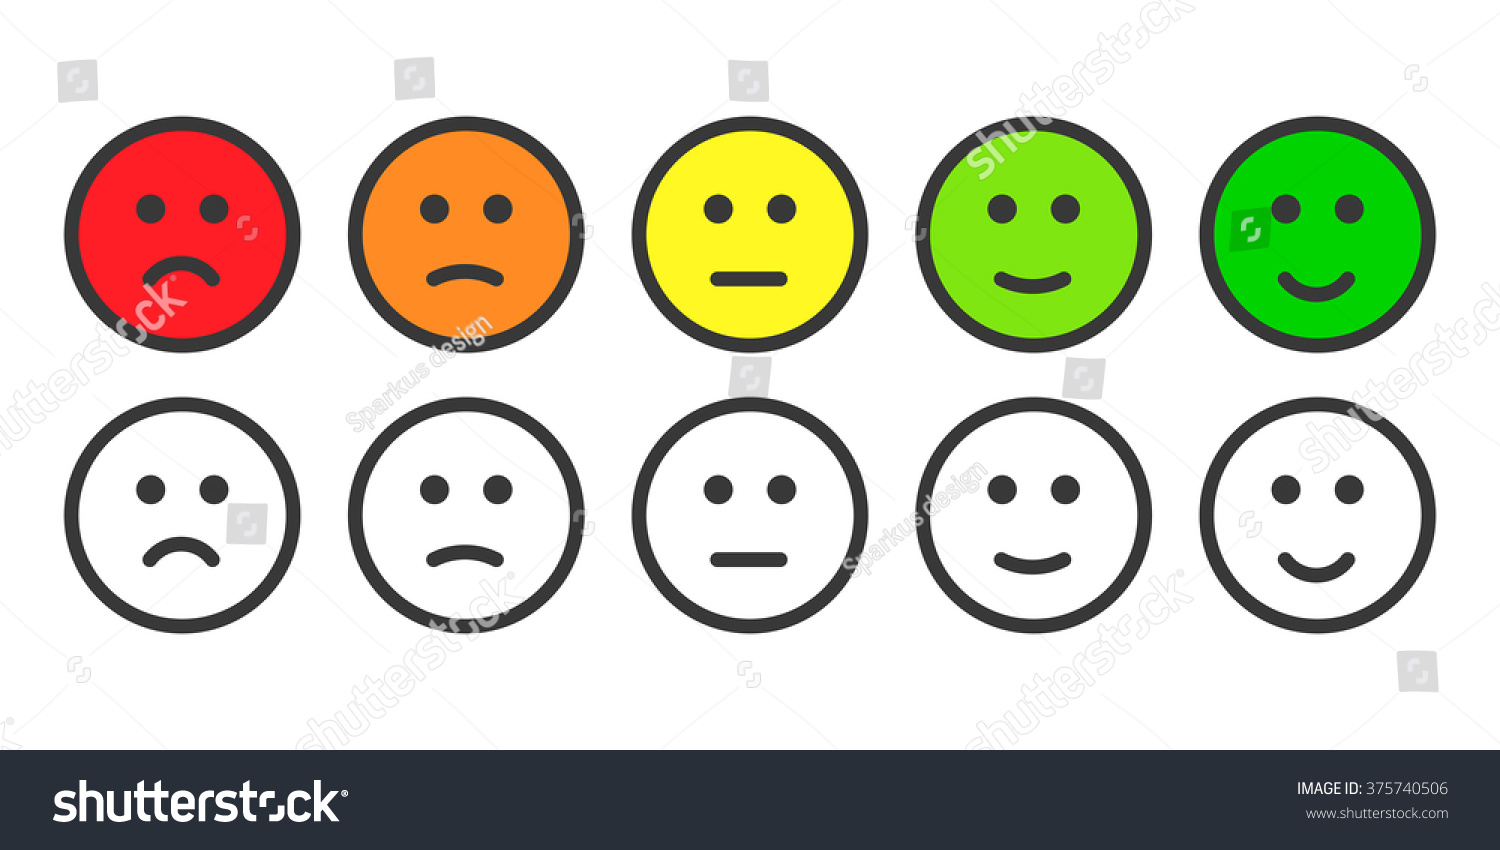 Emoji icons face icon emoticons rate stock illustration 375740506 emoji icons face icon emoticons for rate customer satisfaction level five grade smileys biocorpaavc Images